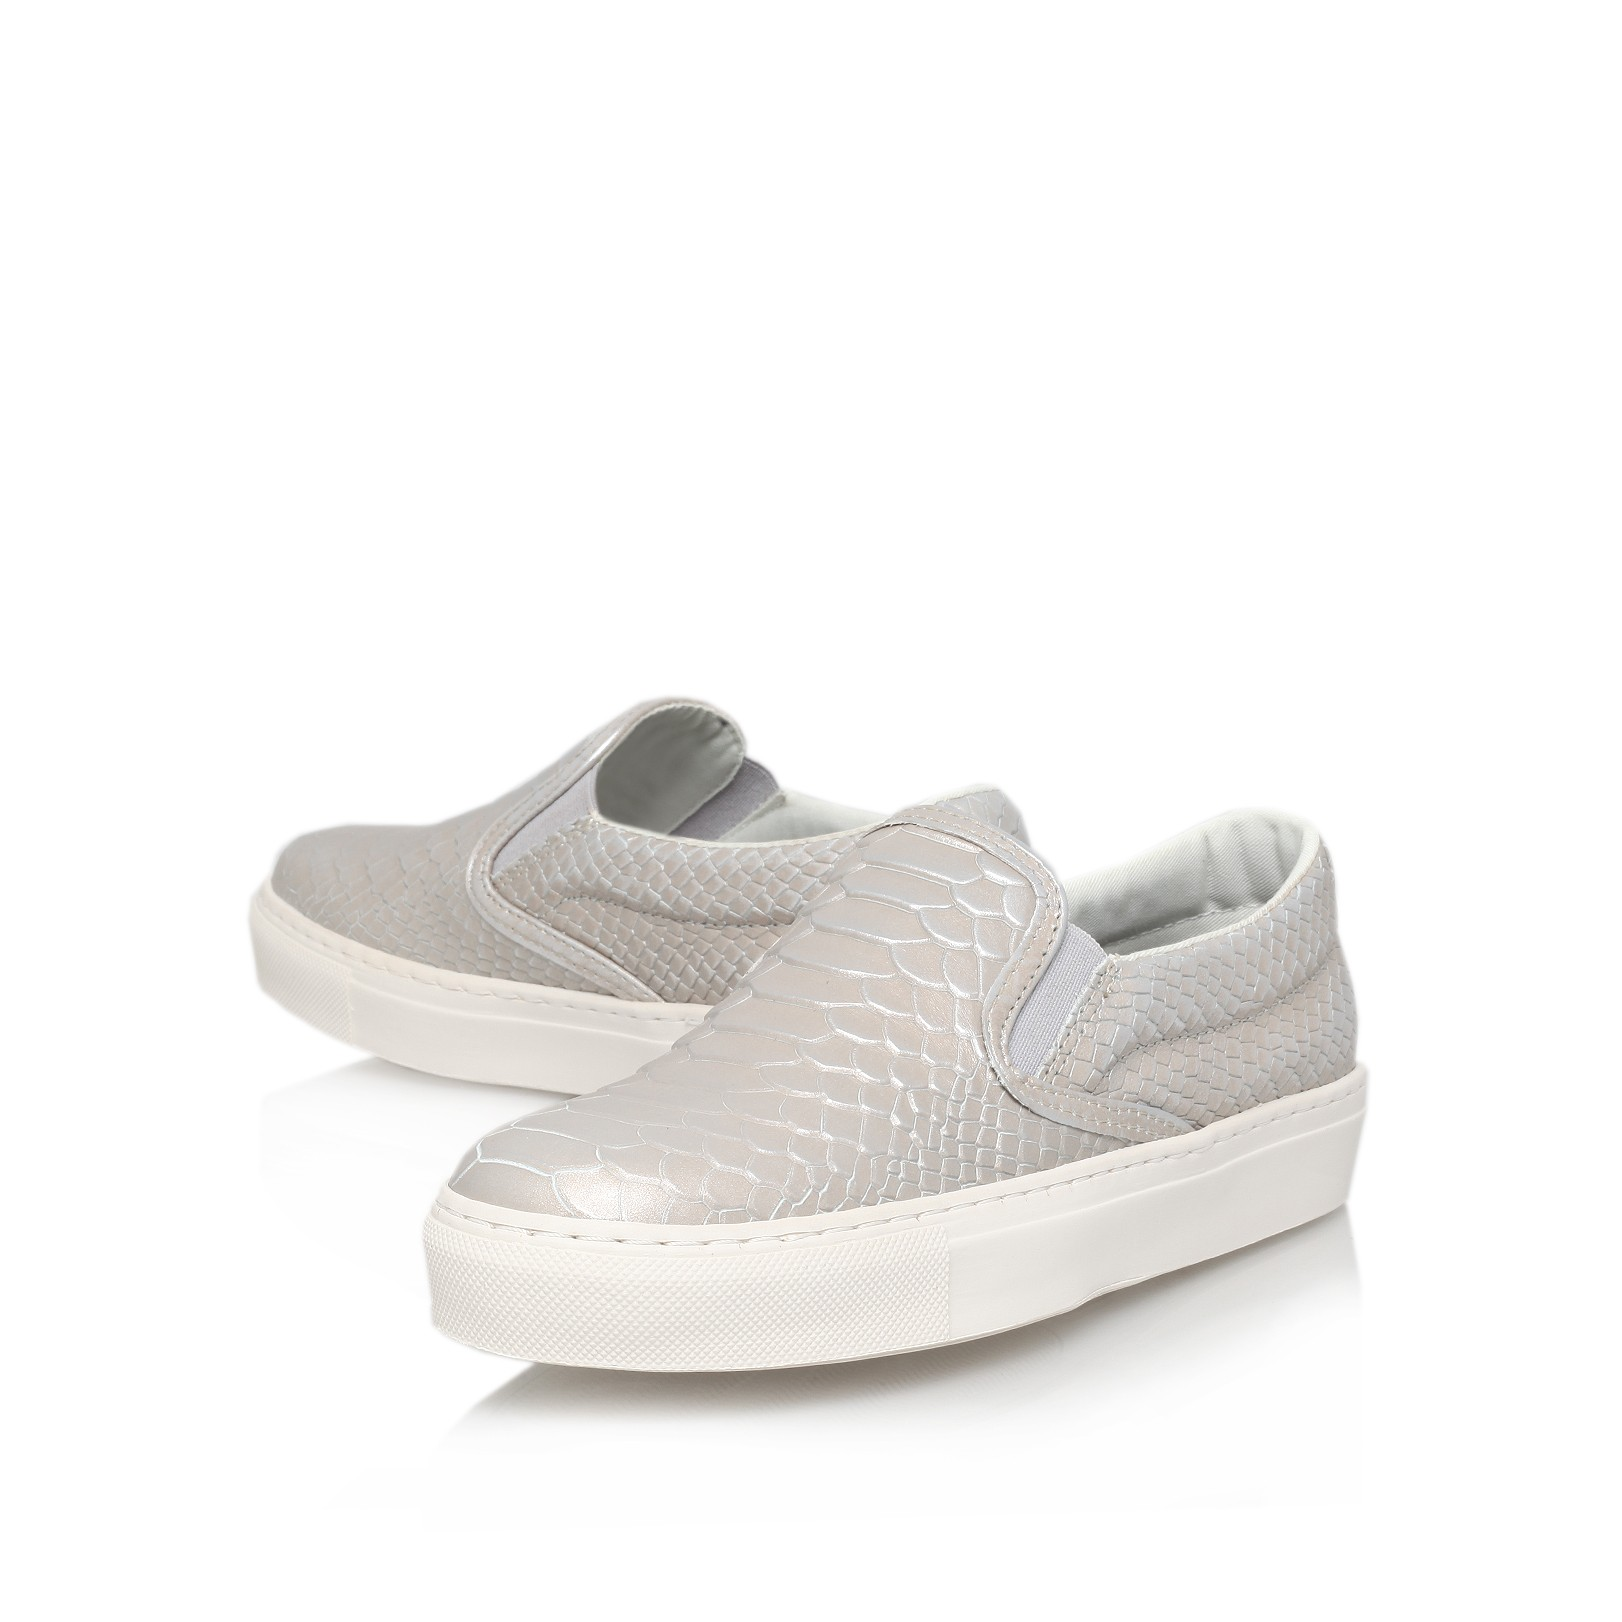 KG, Londres Casual Slip on Sneaker £90